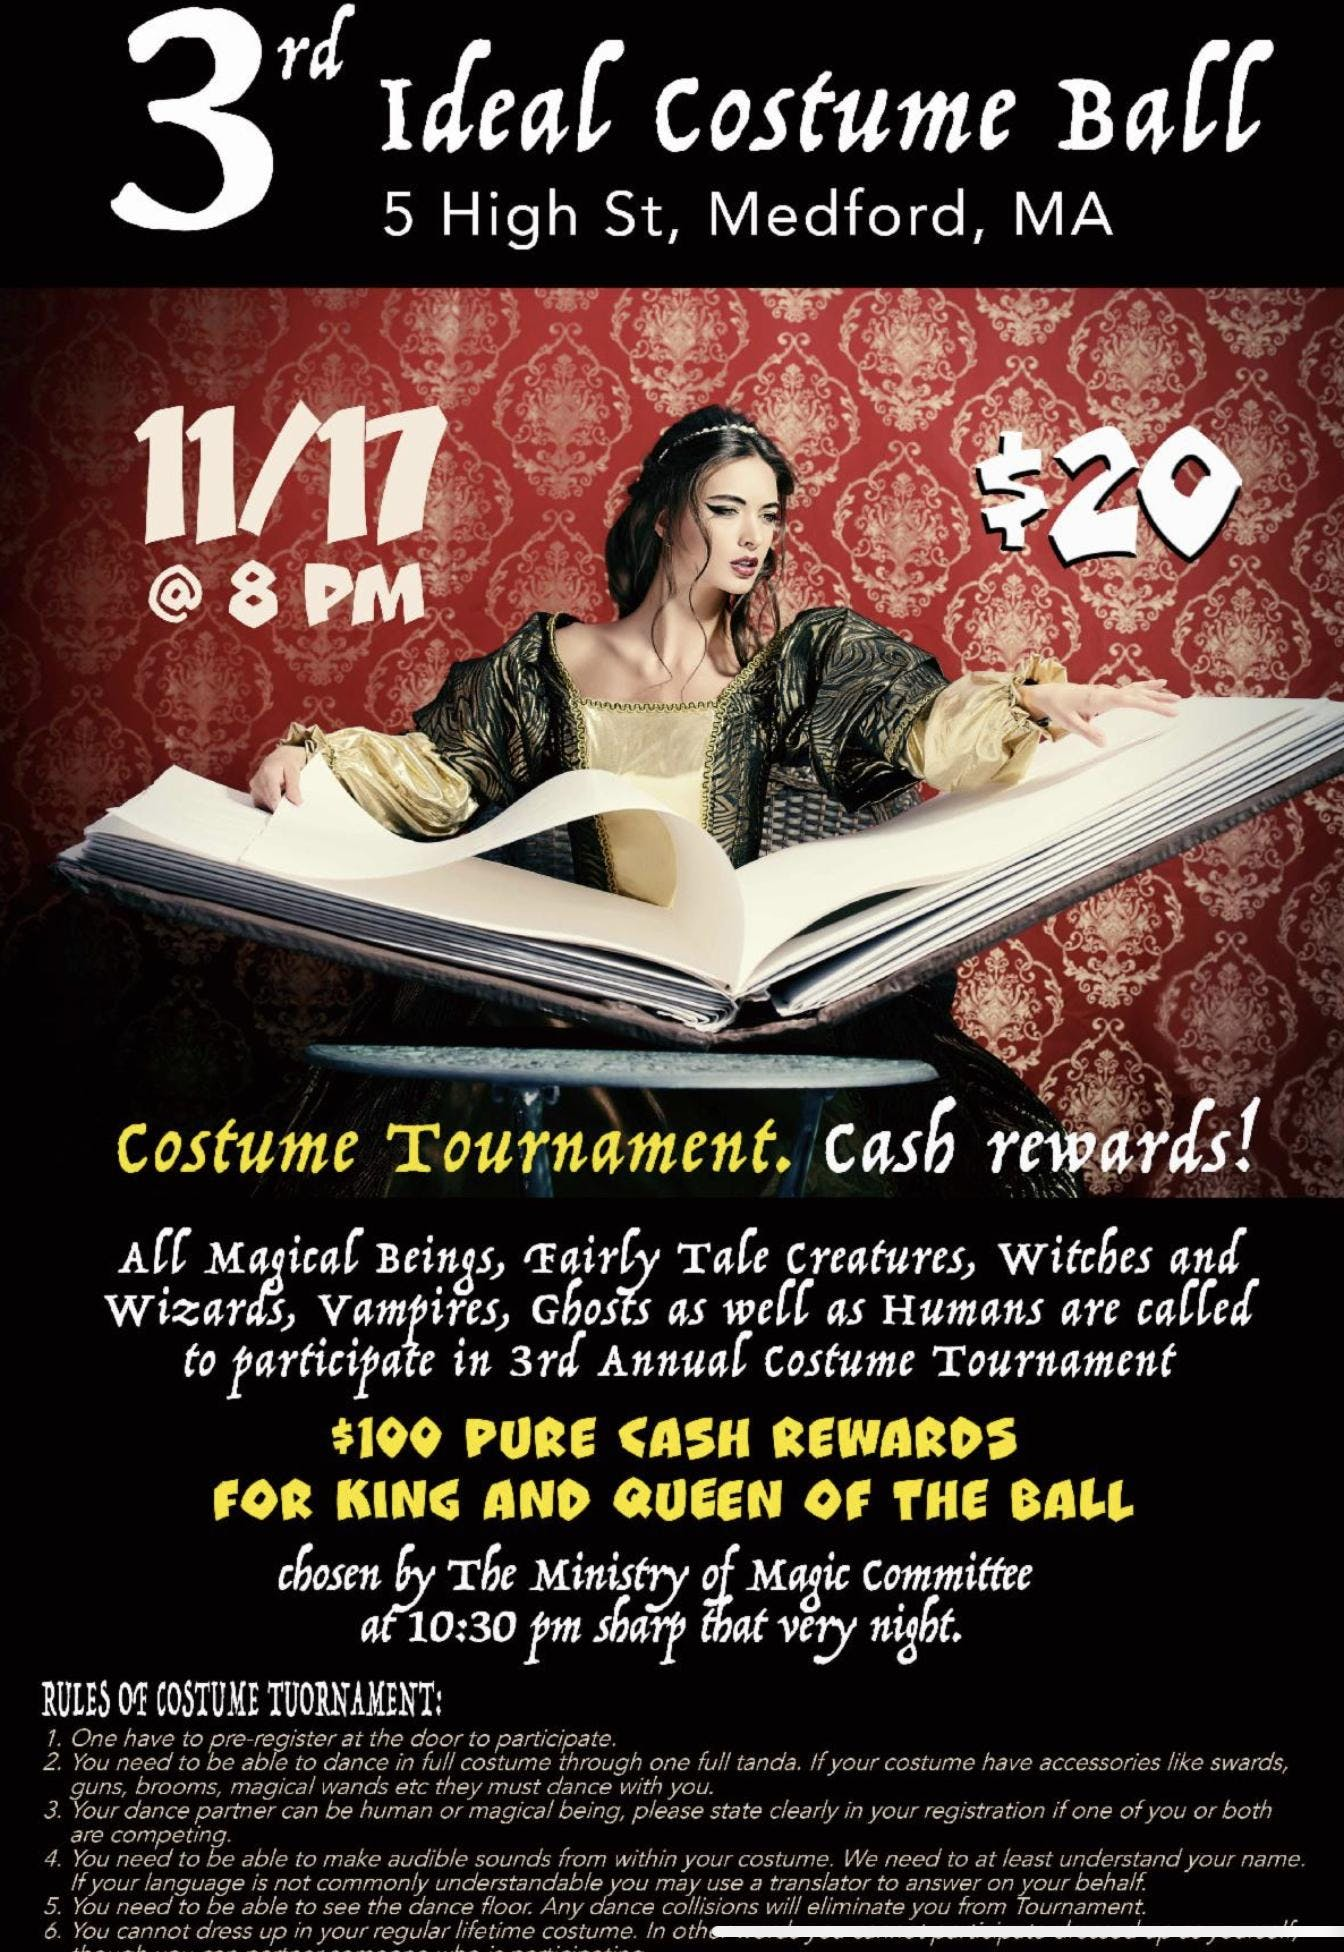 3rd Annual Costume Ball and Costume Tournament